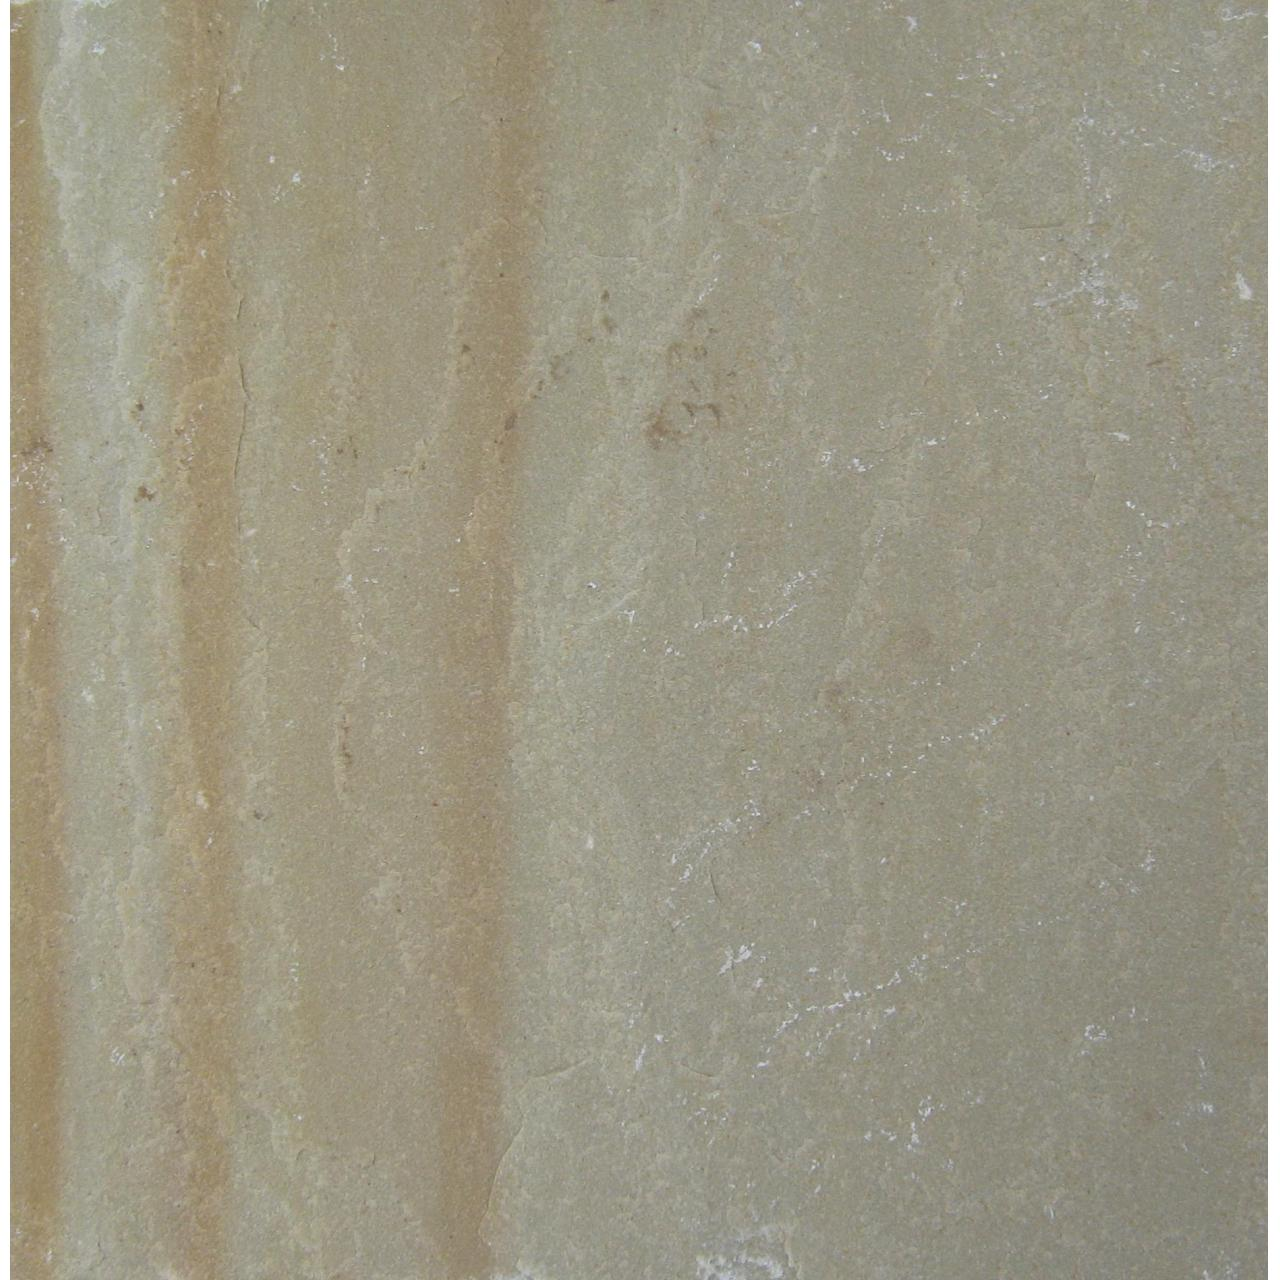 FOB PRIES INDIAN SAND STONE